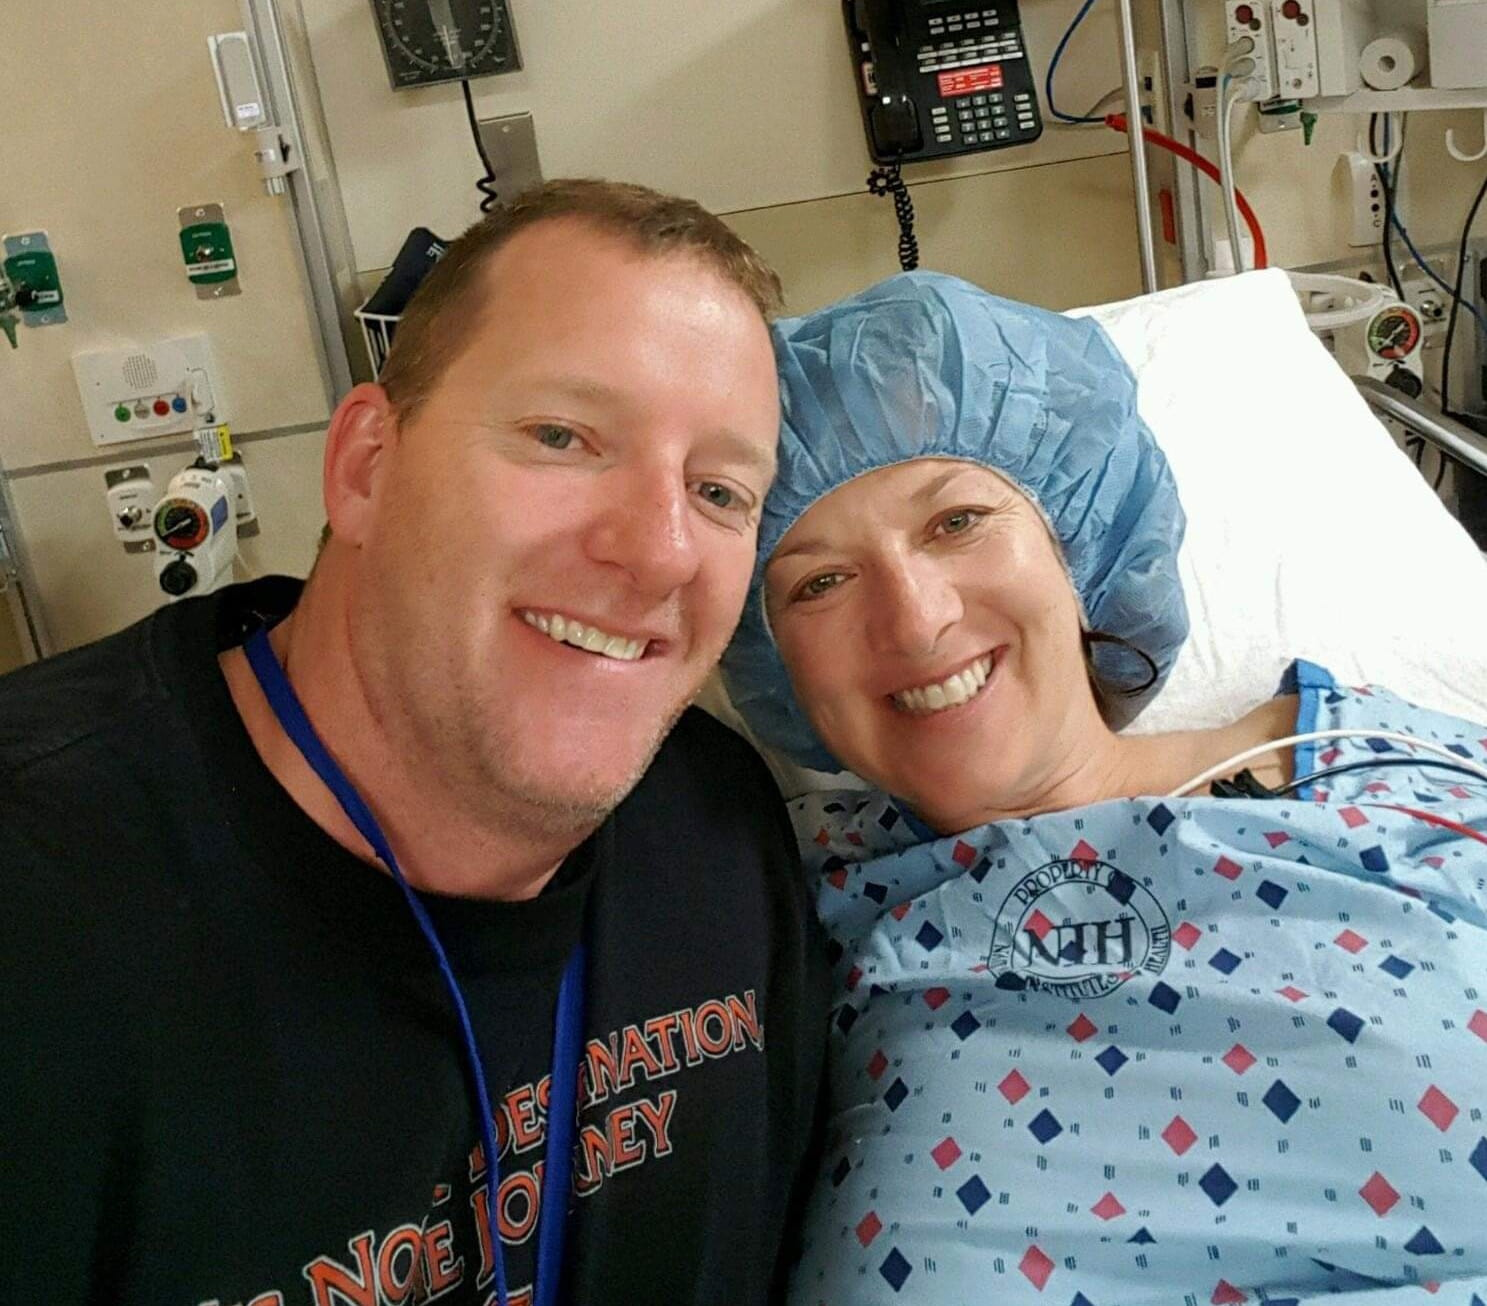 Melinda on her hospital bed, smiling, with her husband at her side, also smiling